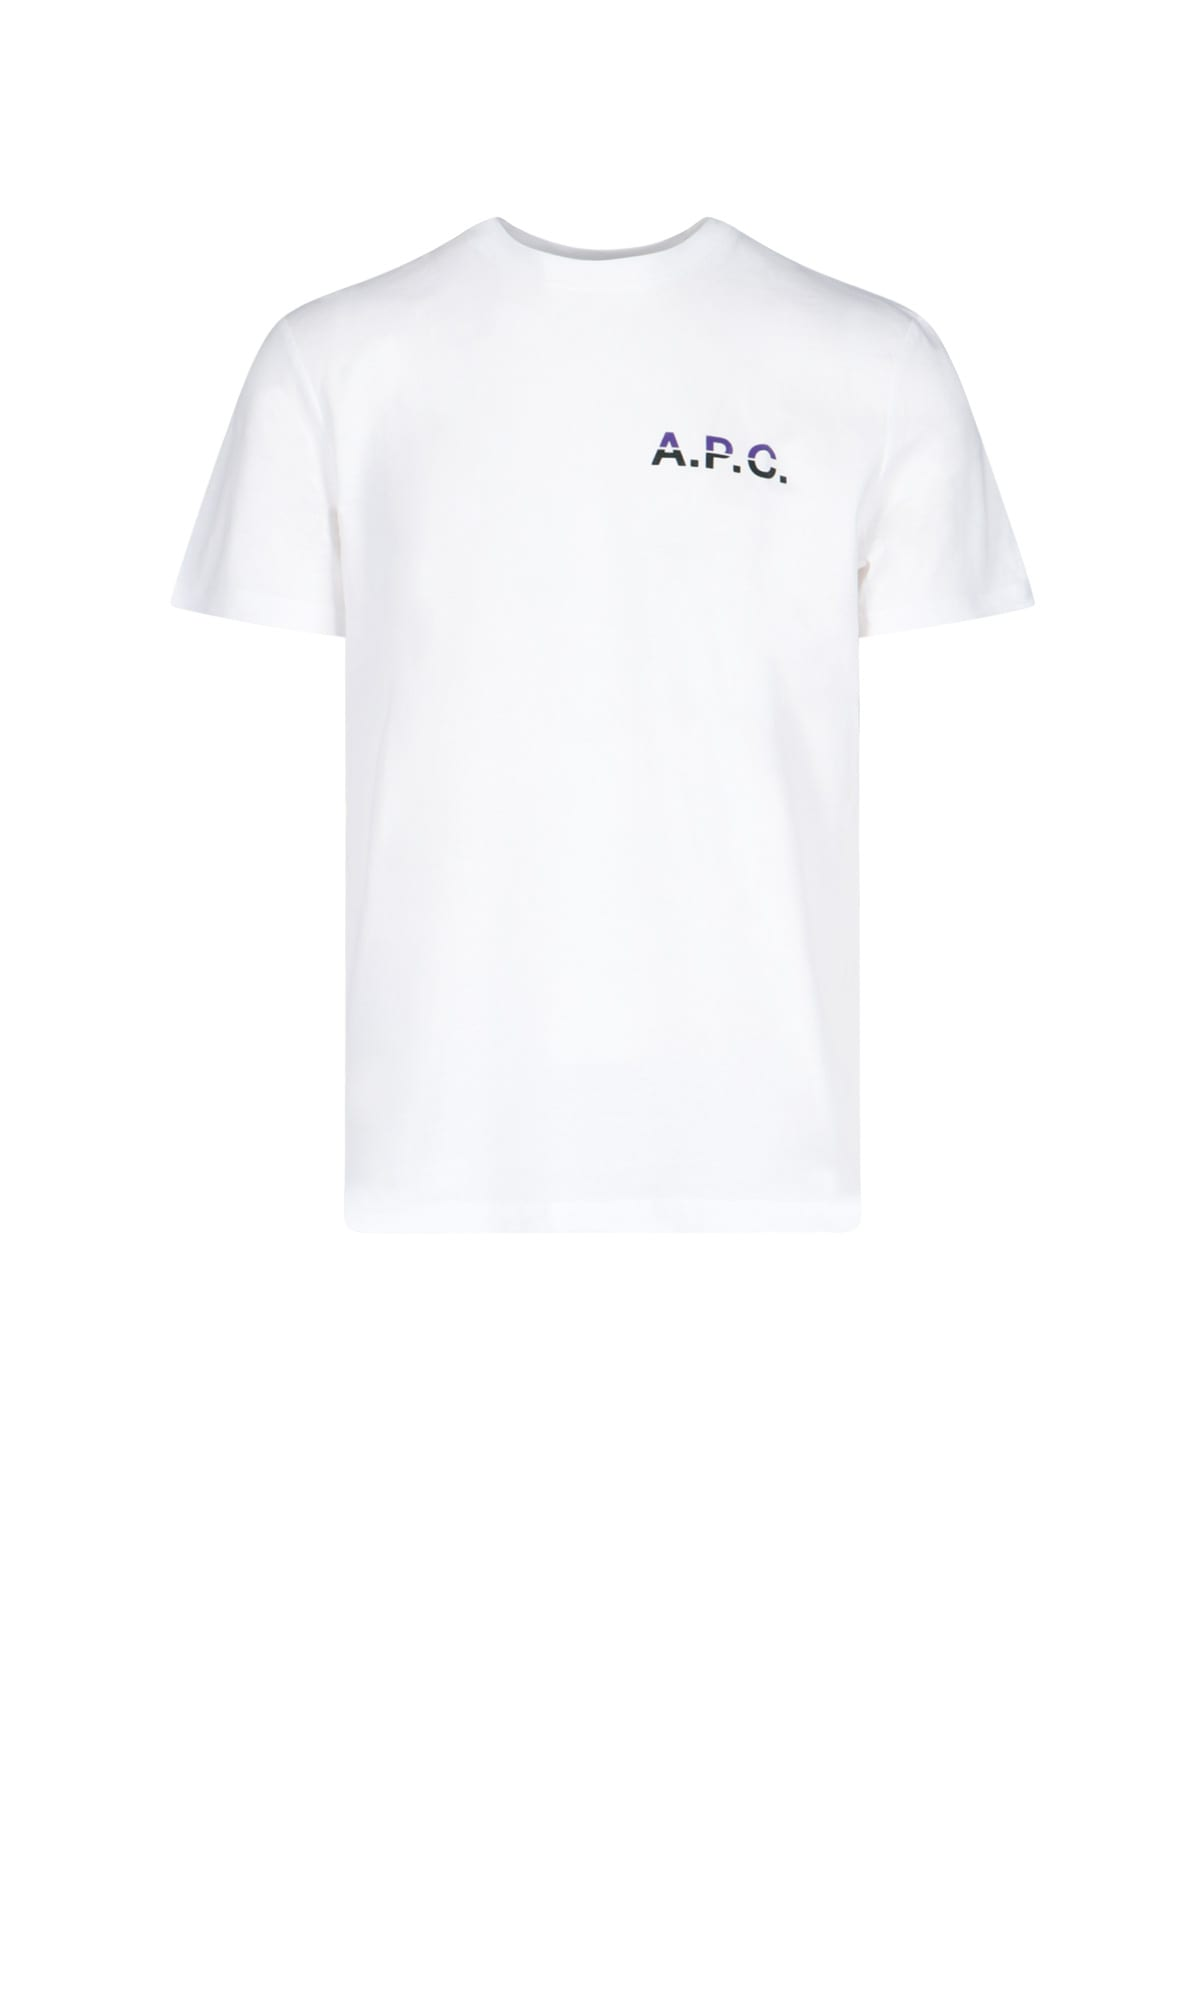 Fashion Style A.p.c. Short Sleeve T-shirt - Top Quality